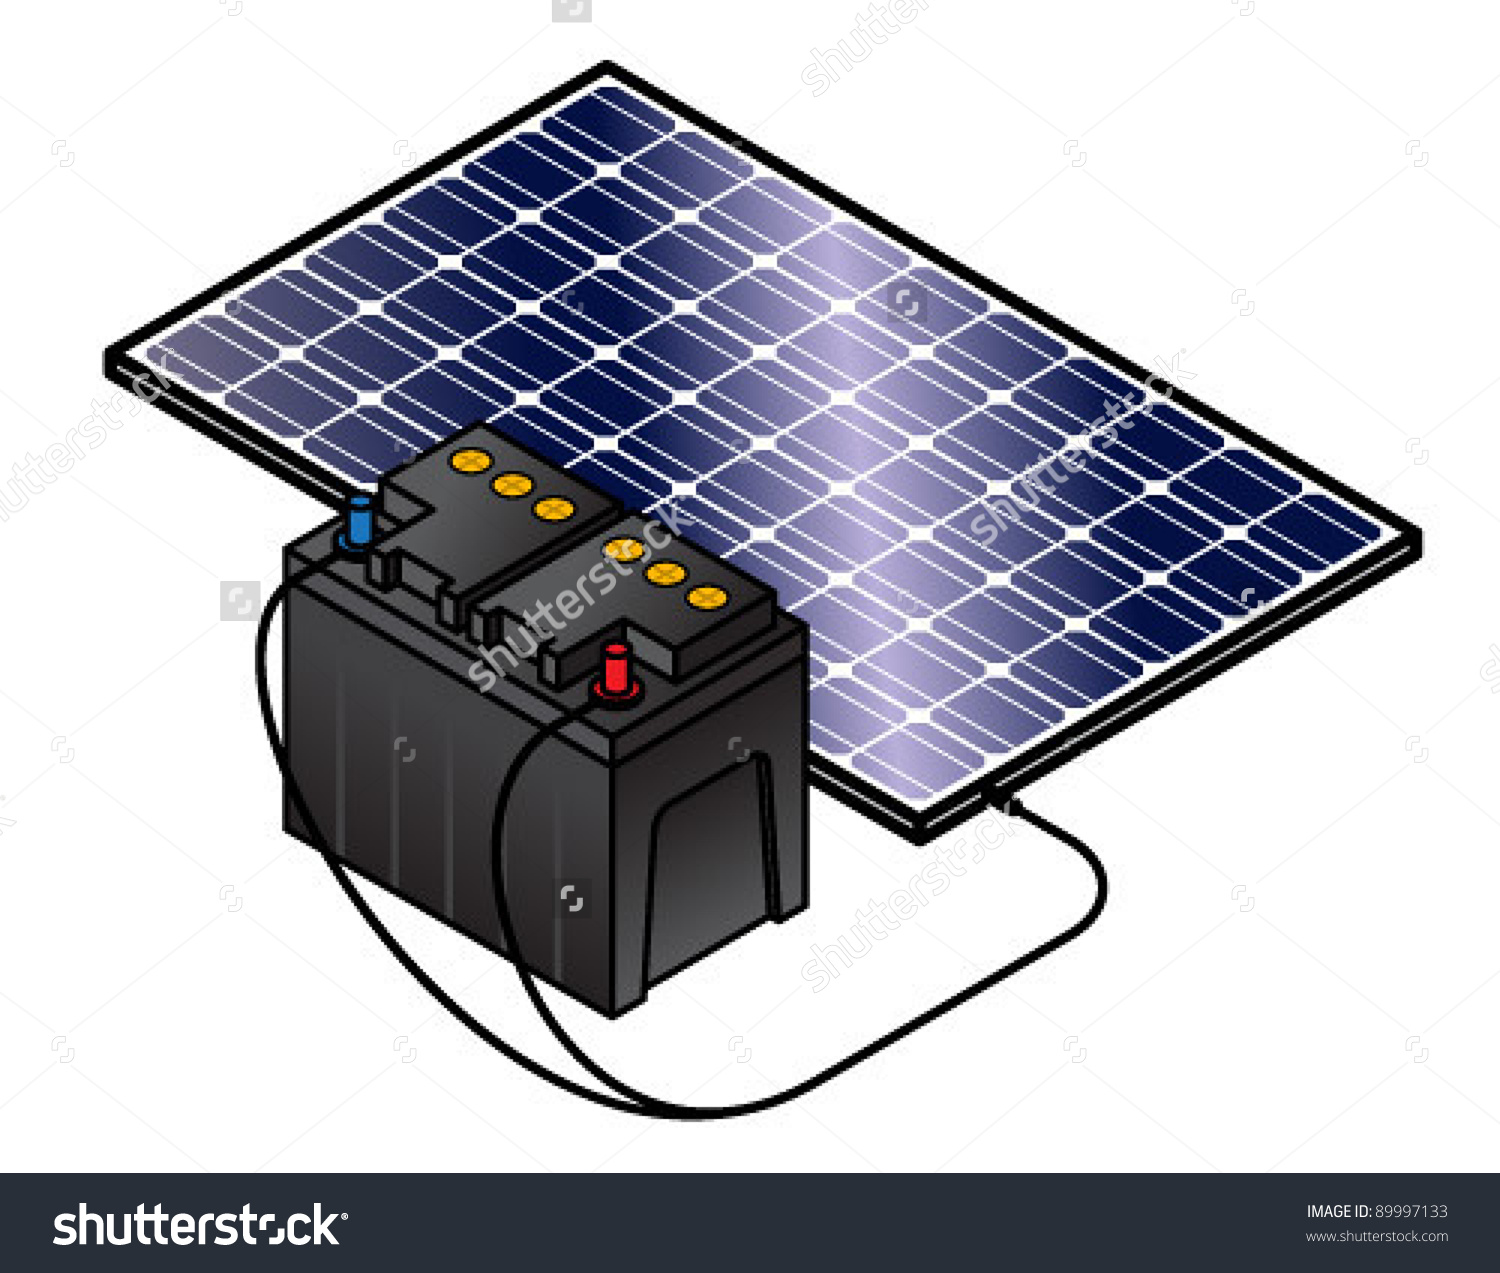 Solar Panel Charging Lead Acid Battery Stock Vector 89997133.